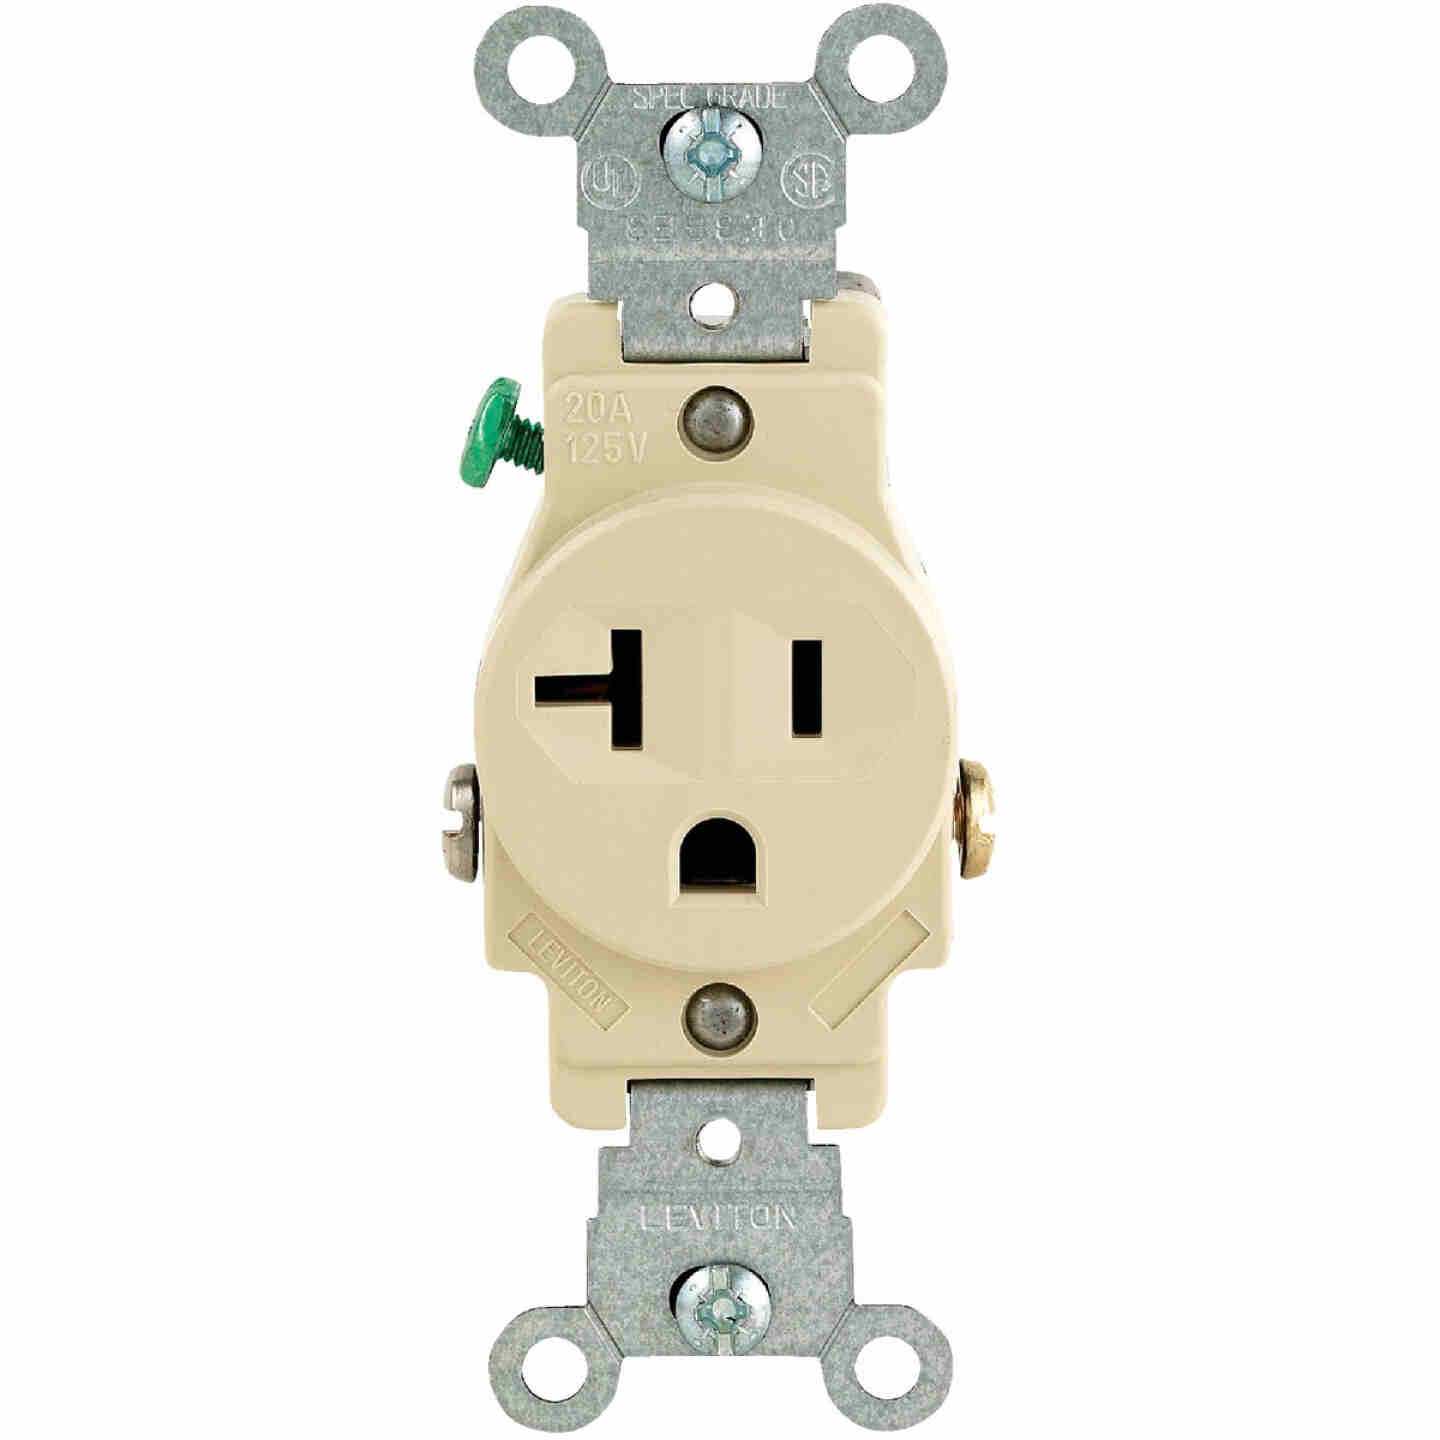 Leviton 20A Ivory Commercial Grade 5-20R Shallow Single Outlet Image 2